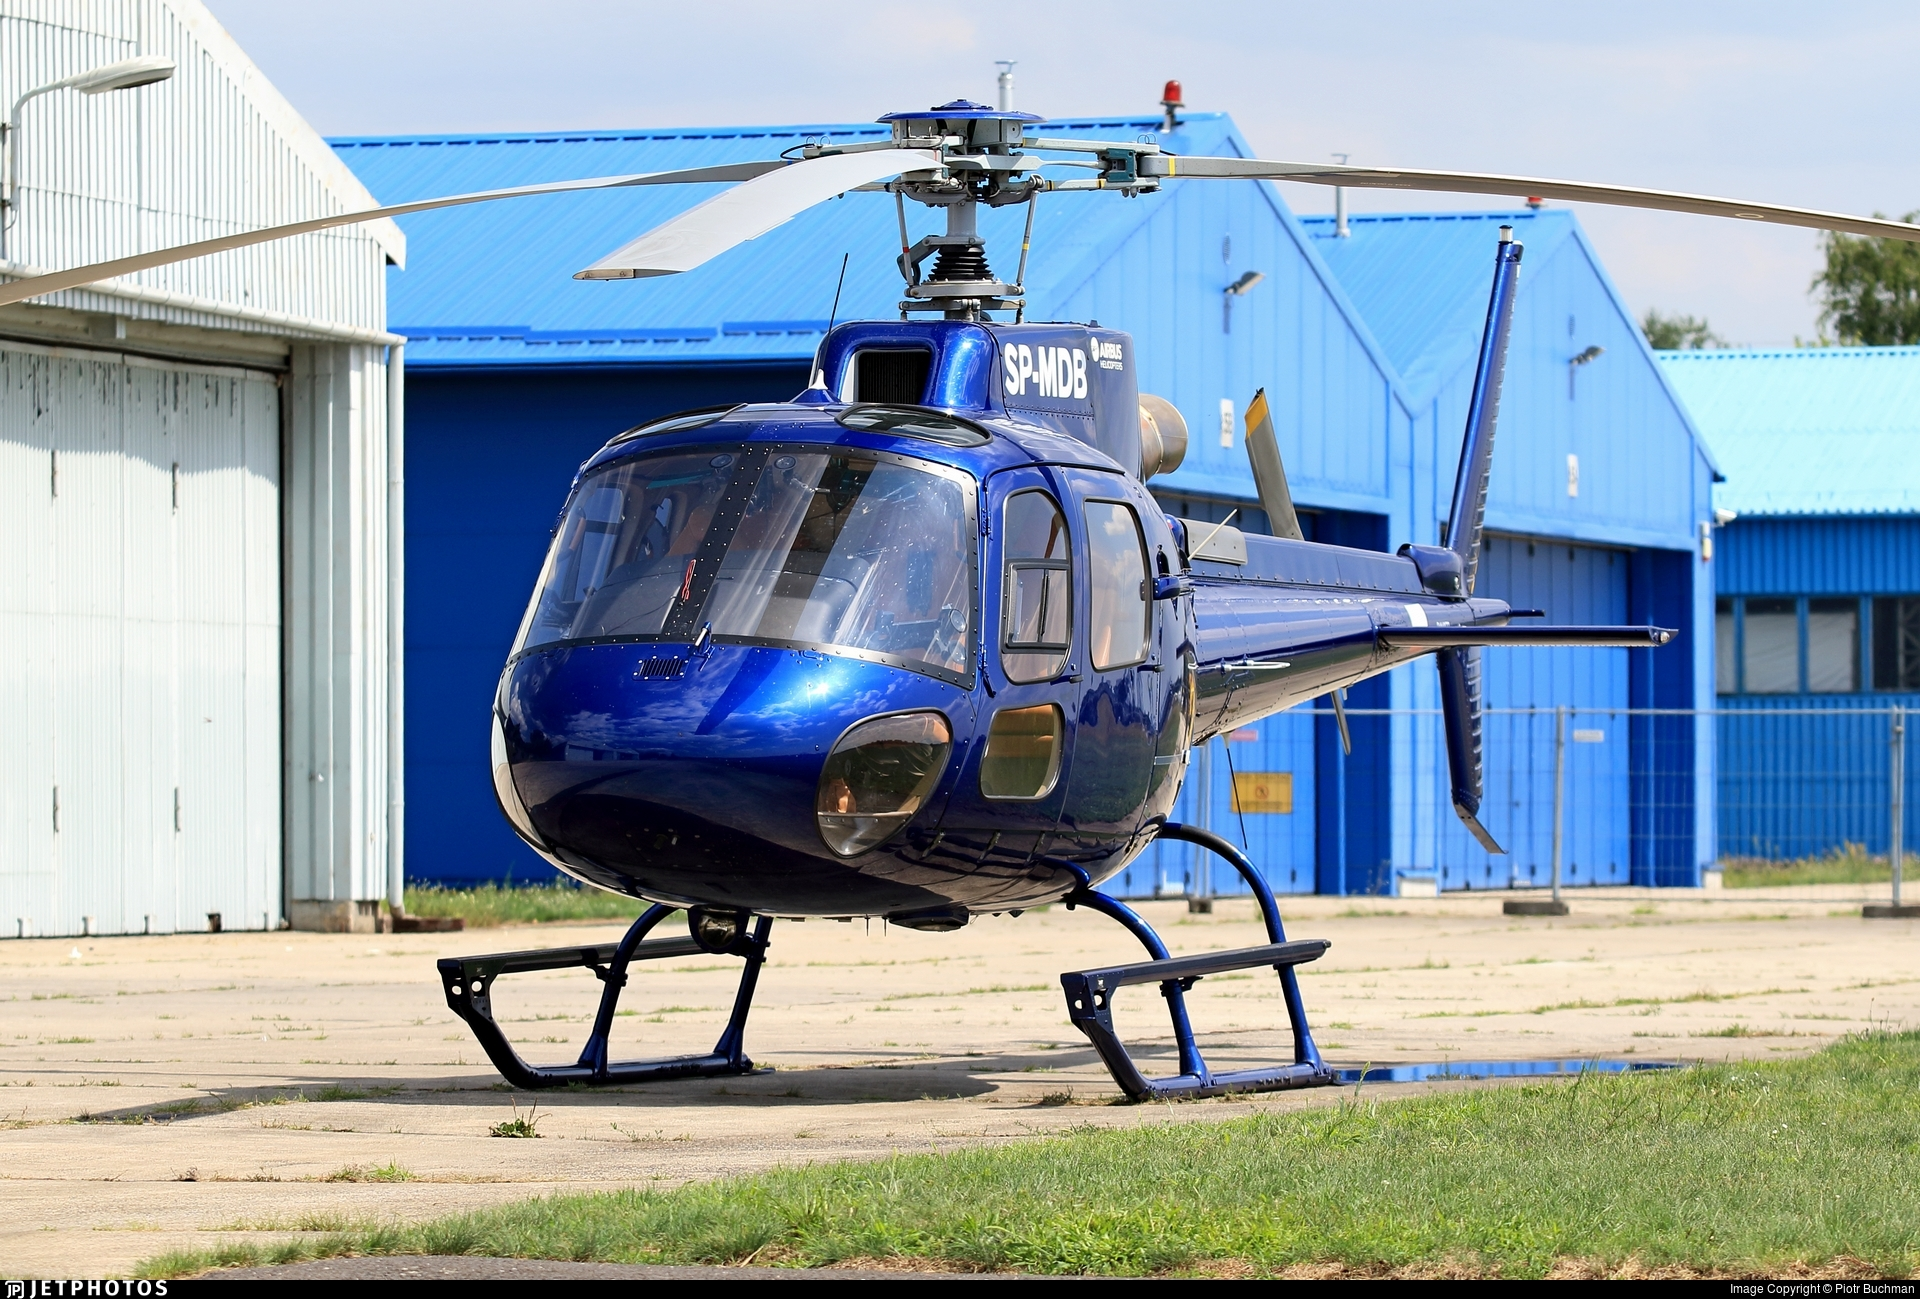 SP-MDB - Airbus Helicopters H125 - Private